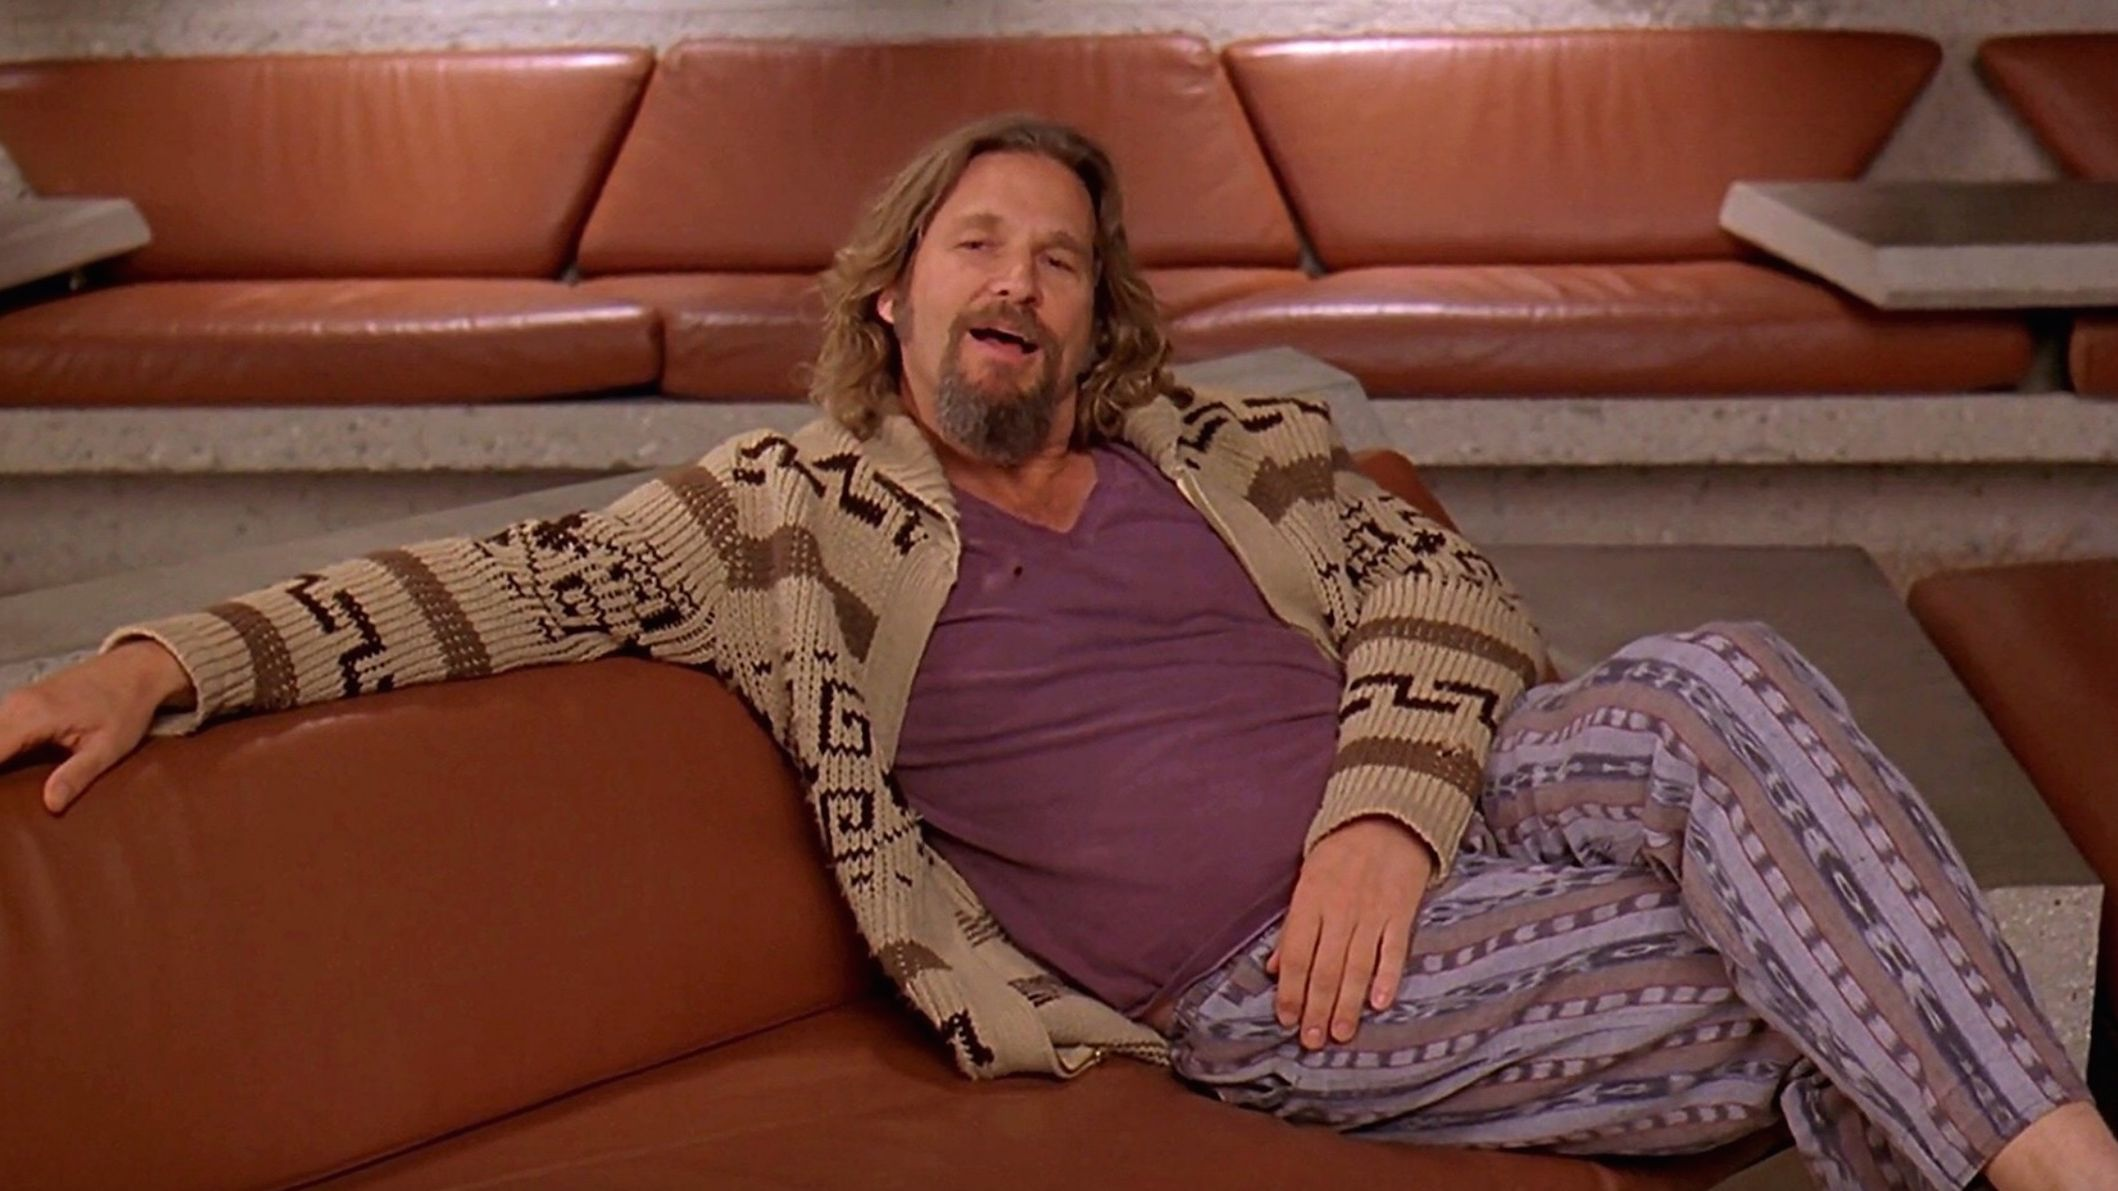 23 Huge Facts About The Big Lebowski | Mental Floss